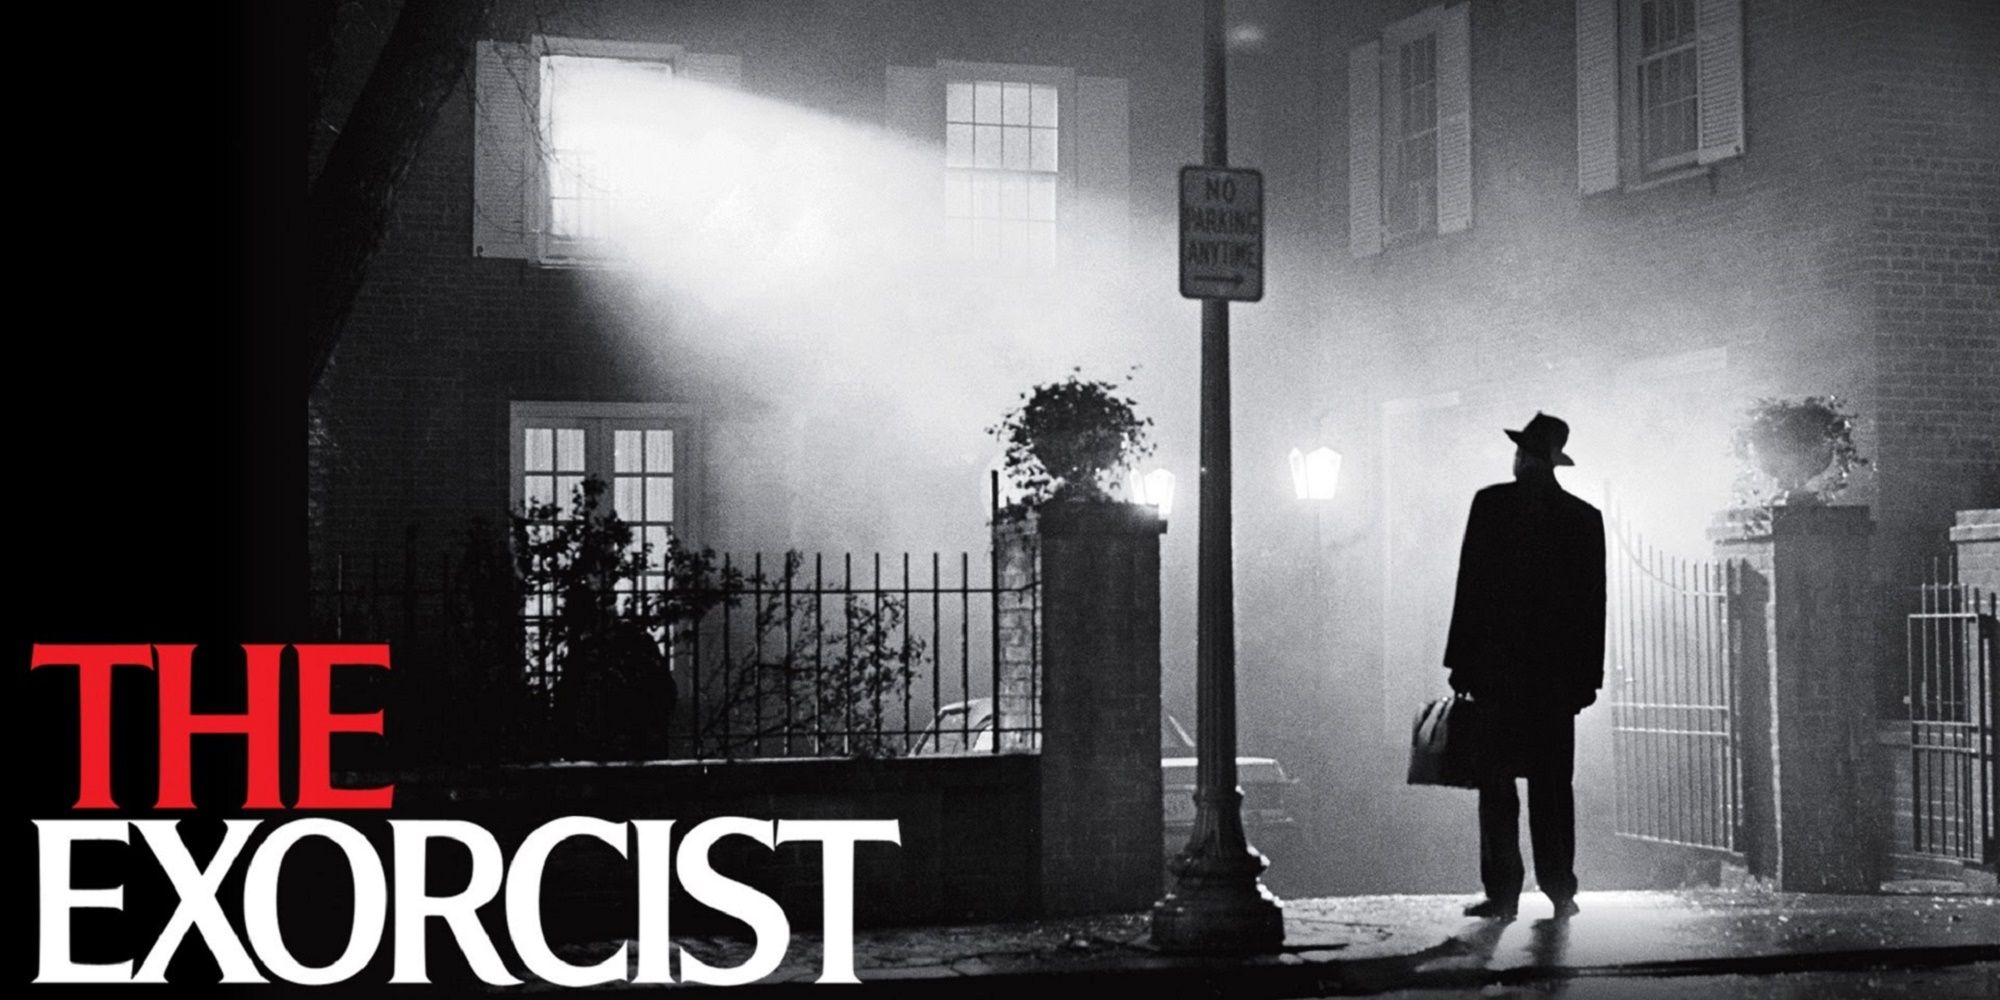 The-Exorcist-Trailer-Foggy-Priest.jpg